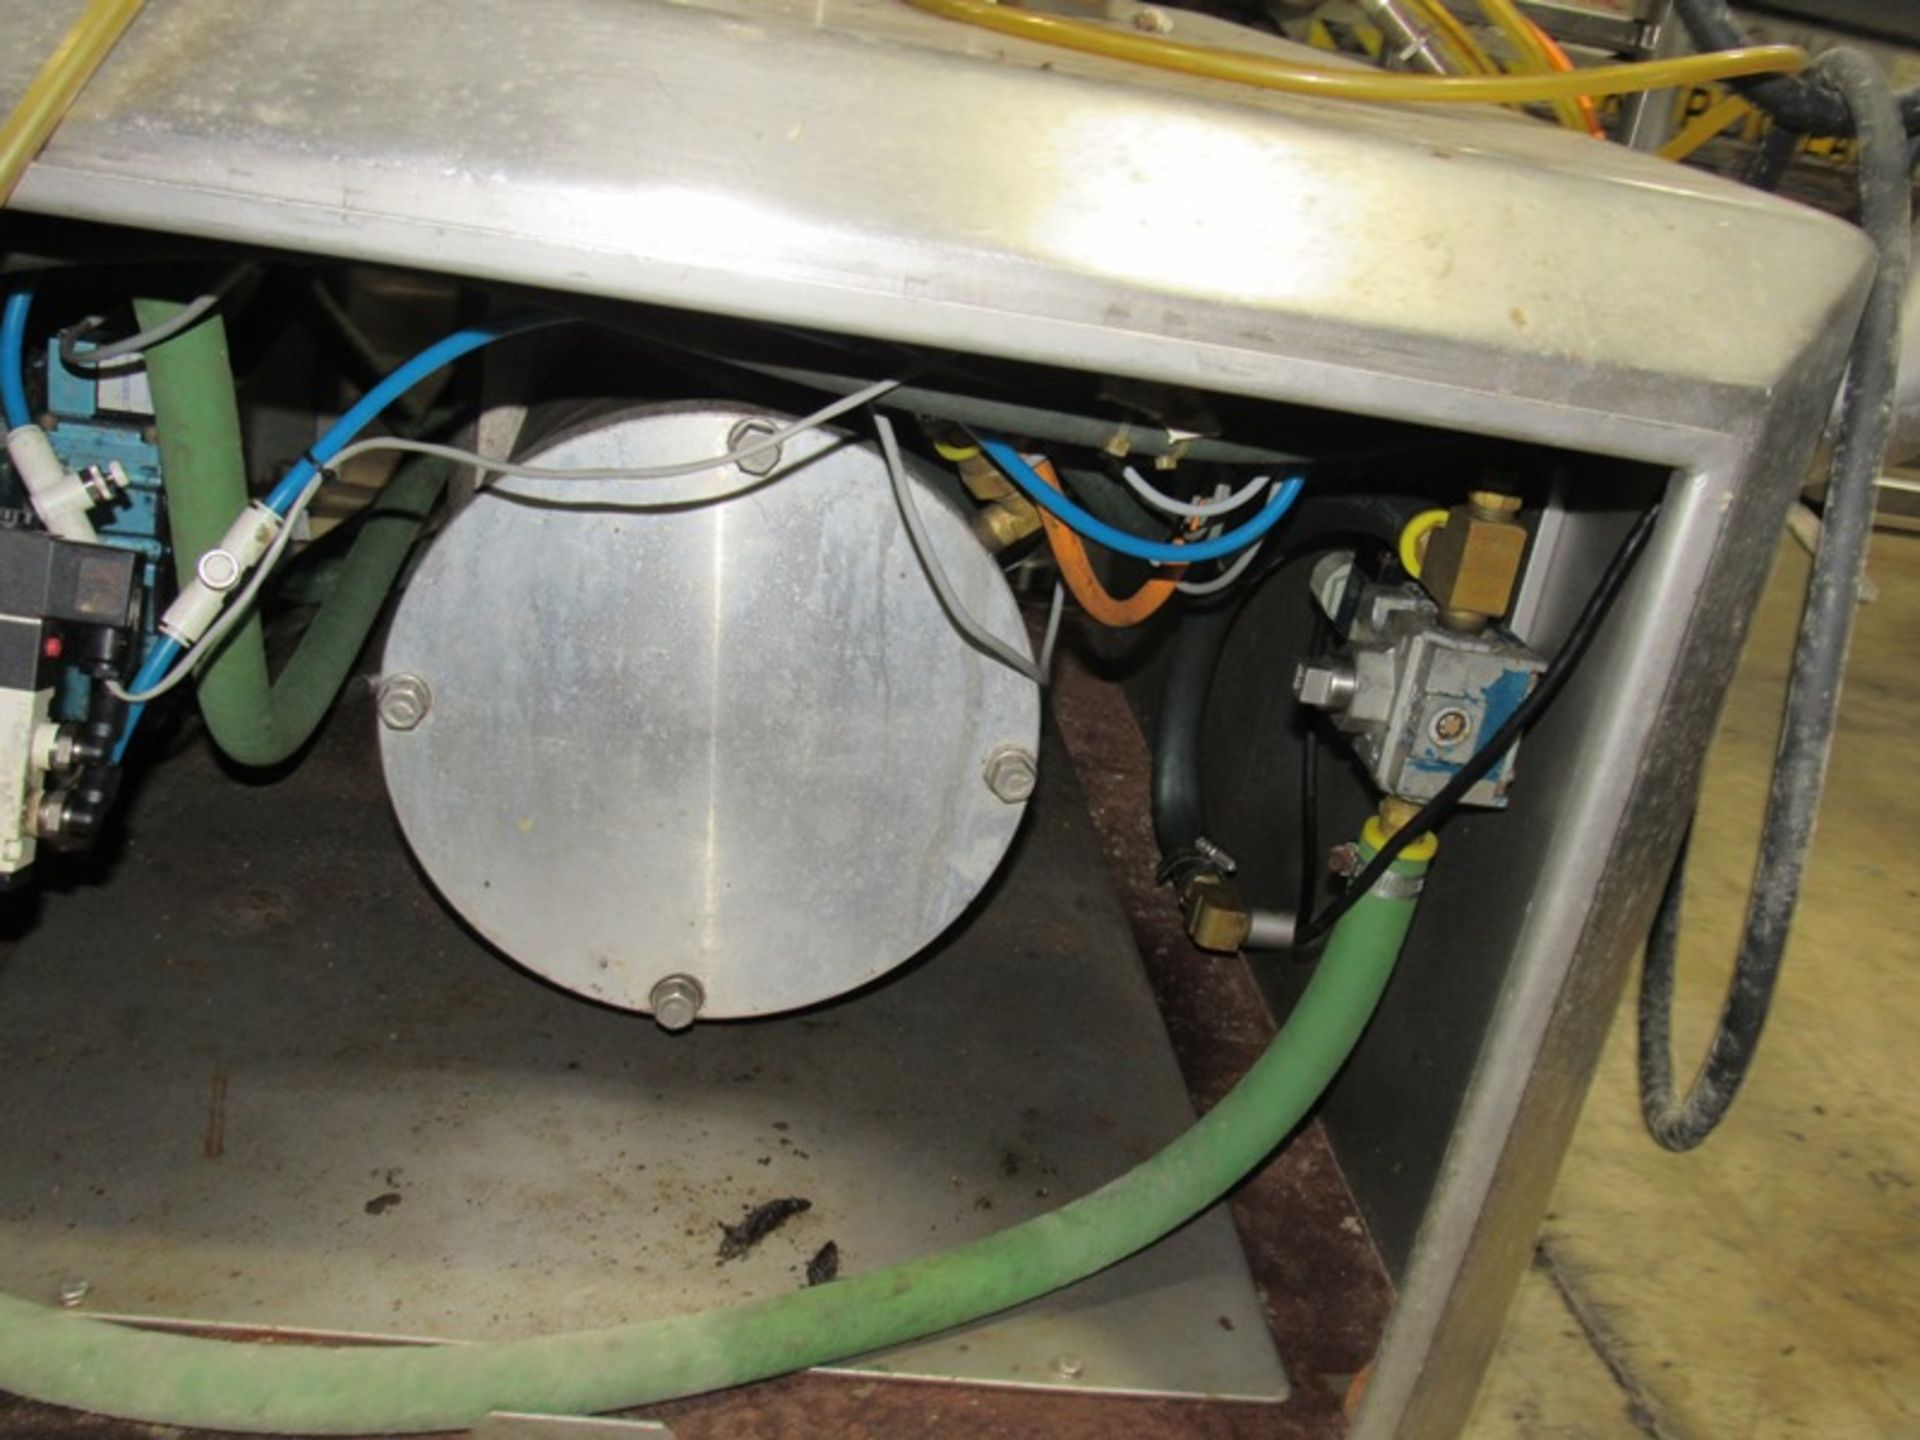 Handtmann Mdl. HVF-90 Vacuum Stuffer Pump (Equipment must be removed by Thursday, June 24th no - Image 4 of 6